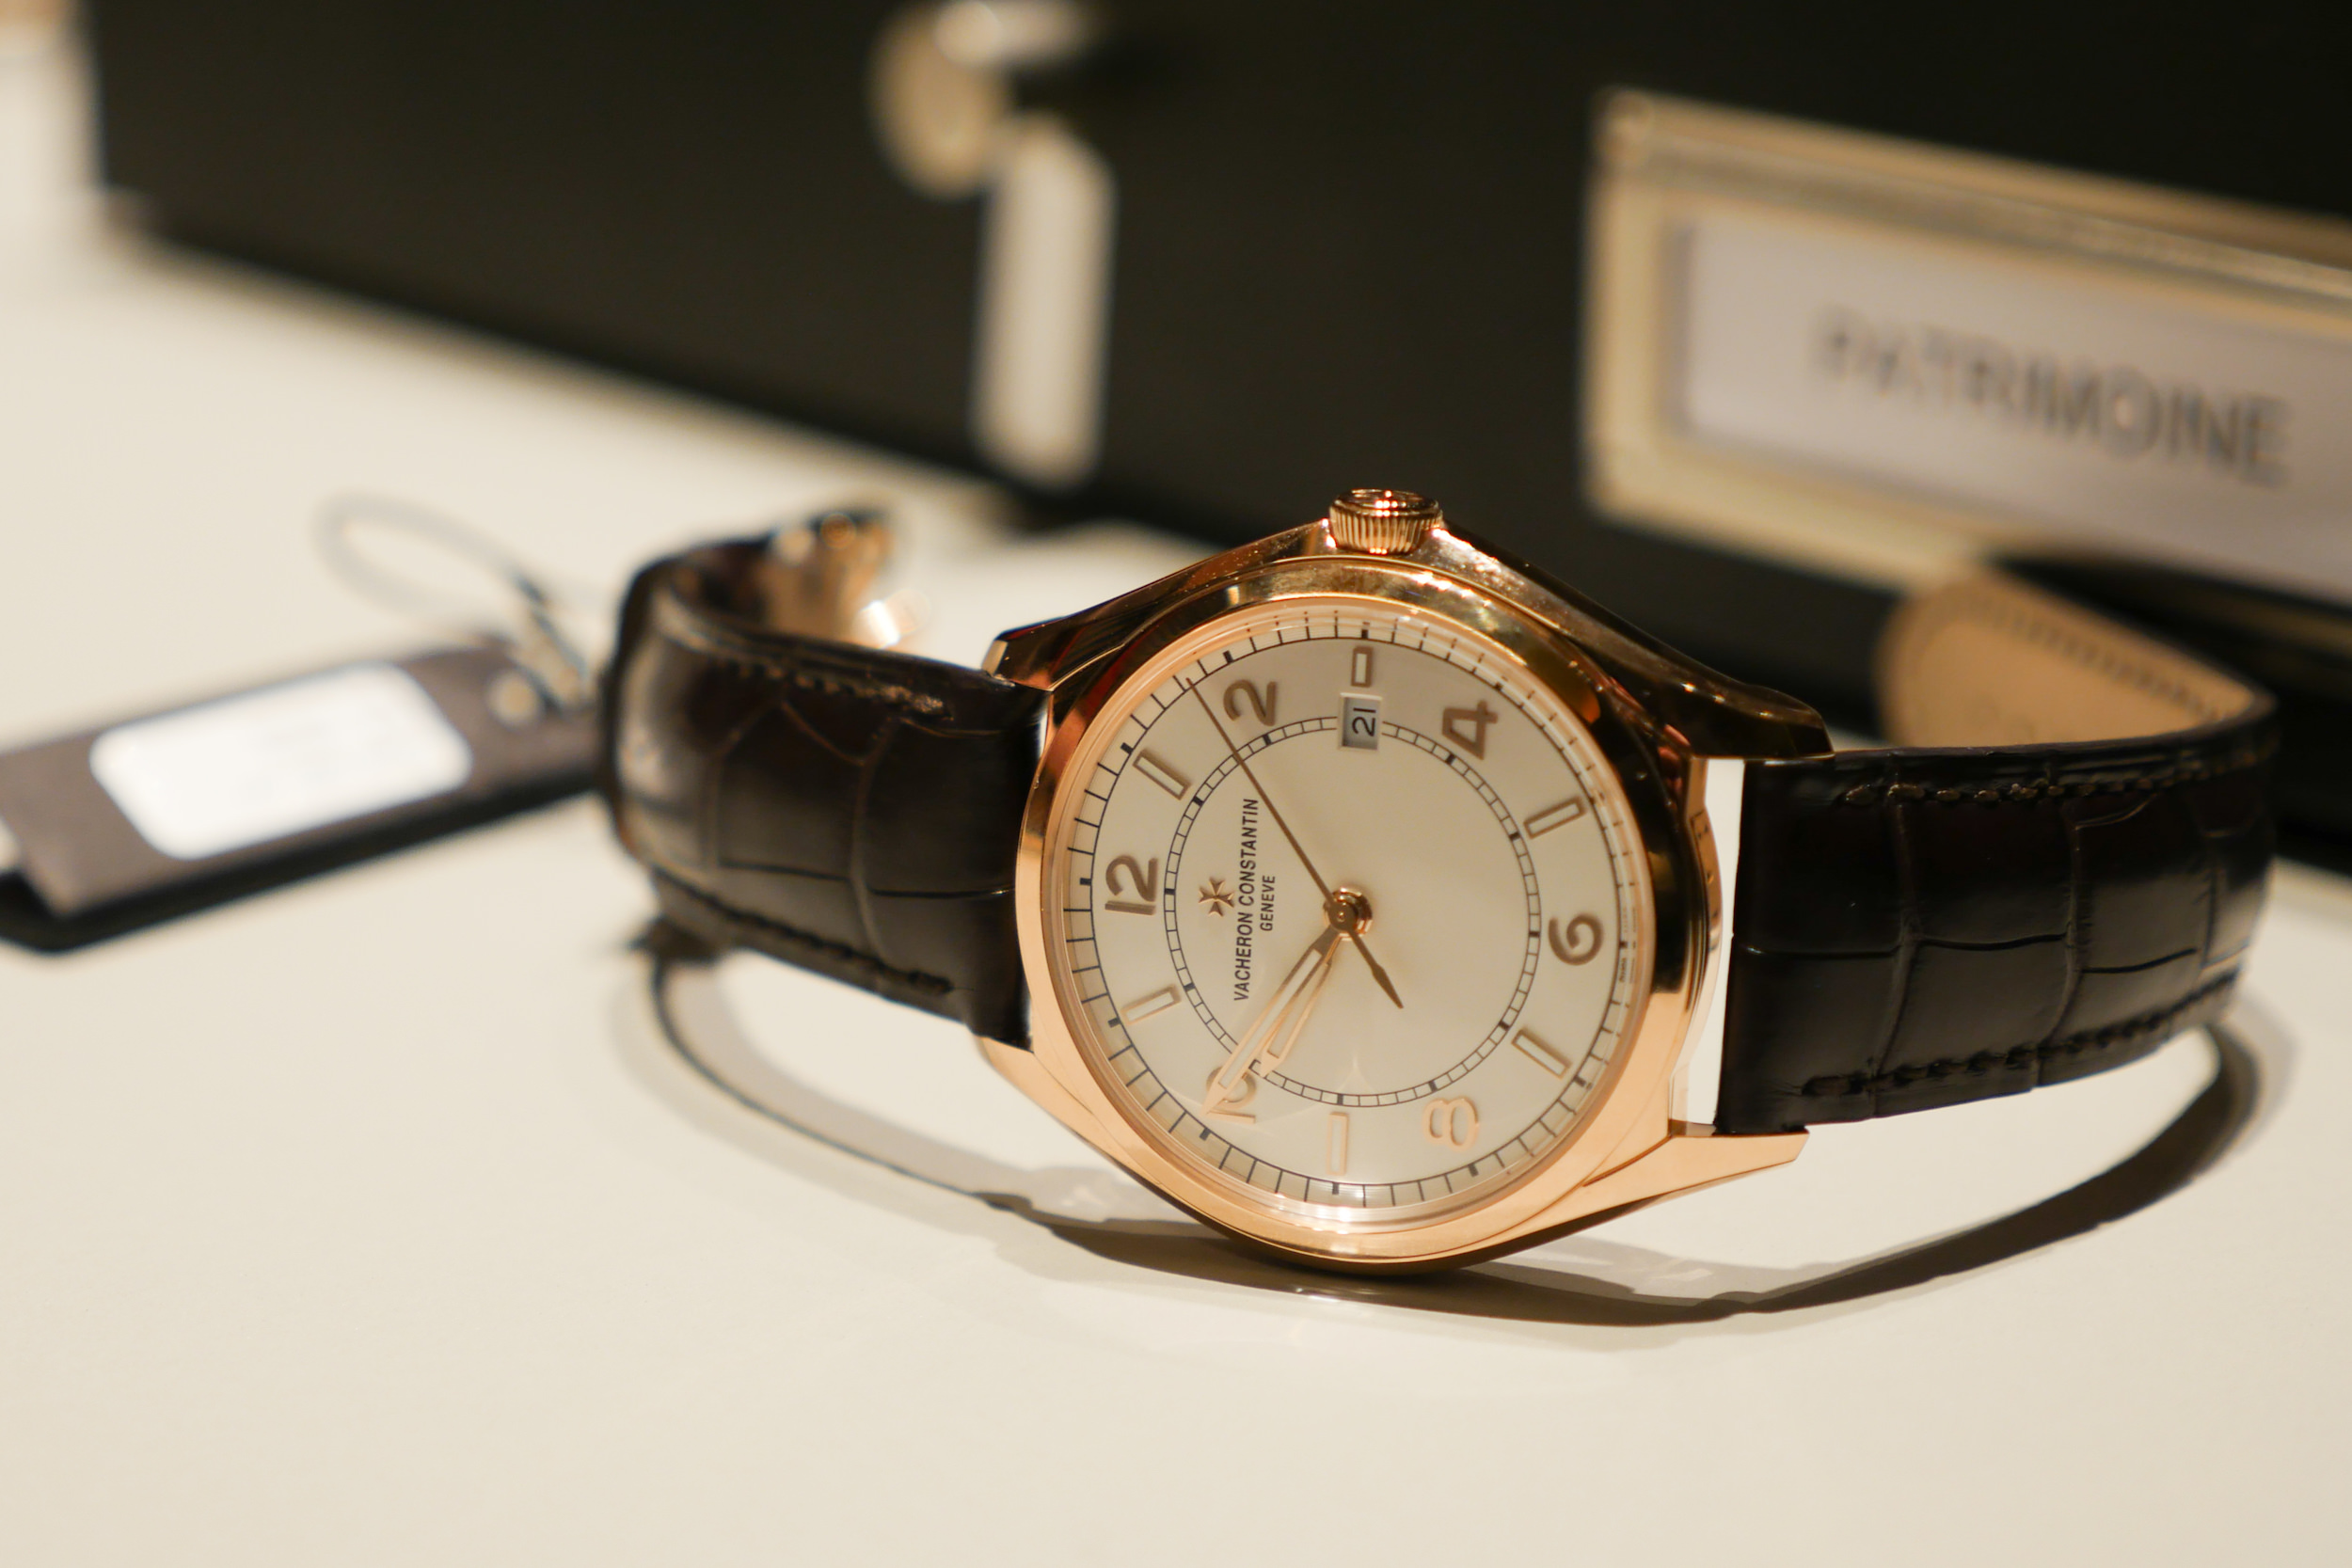 vacheron constantin fiftysix or rose